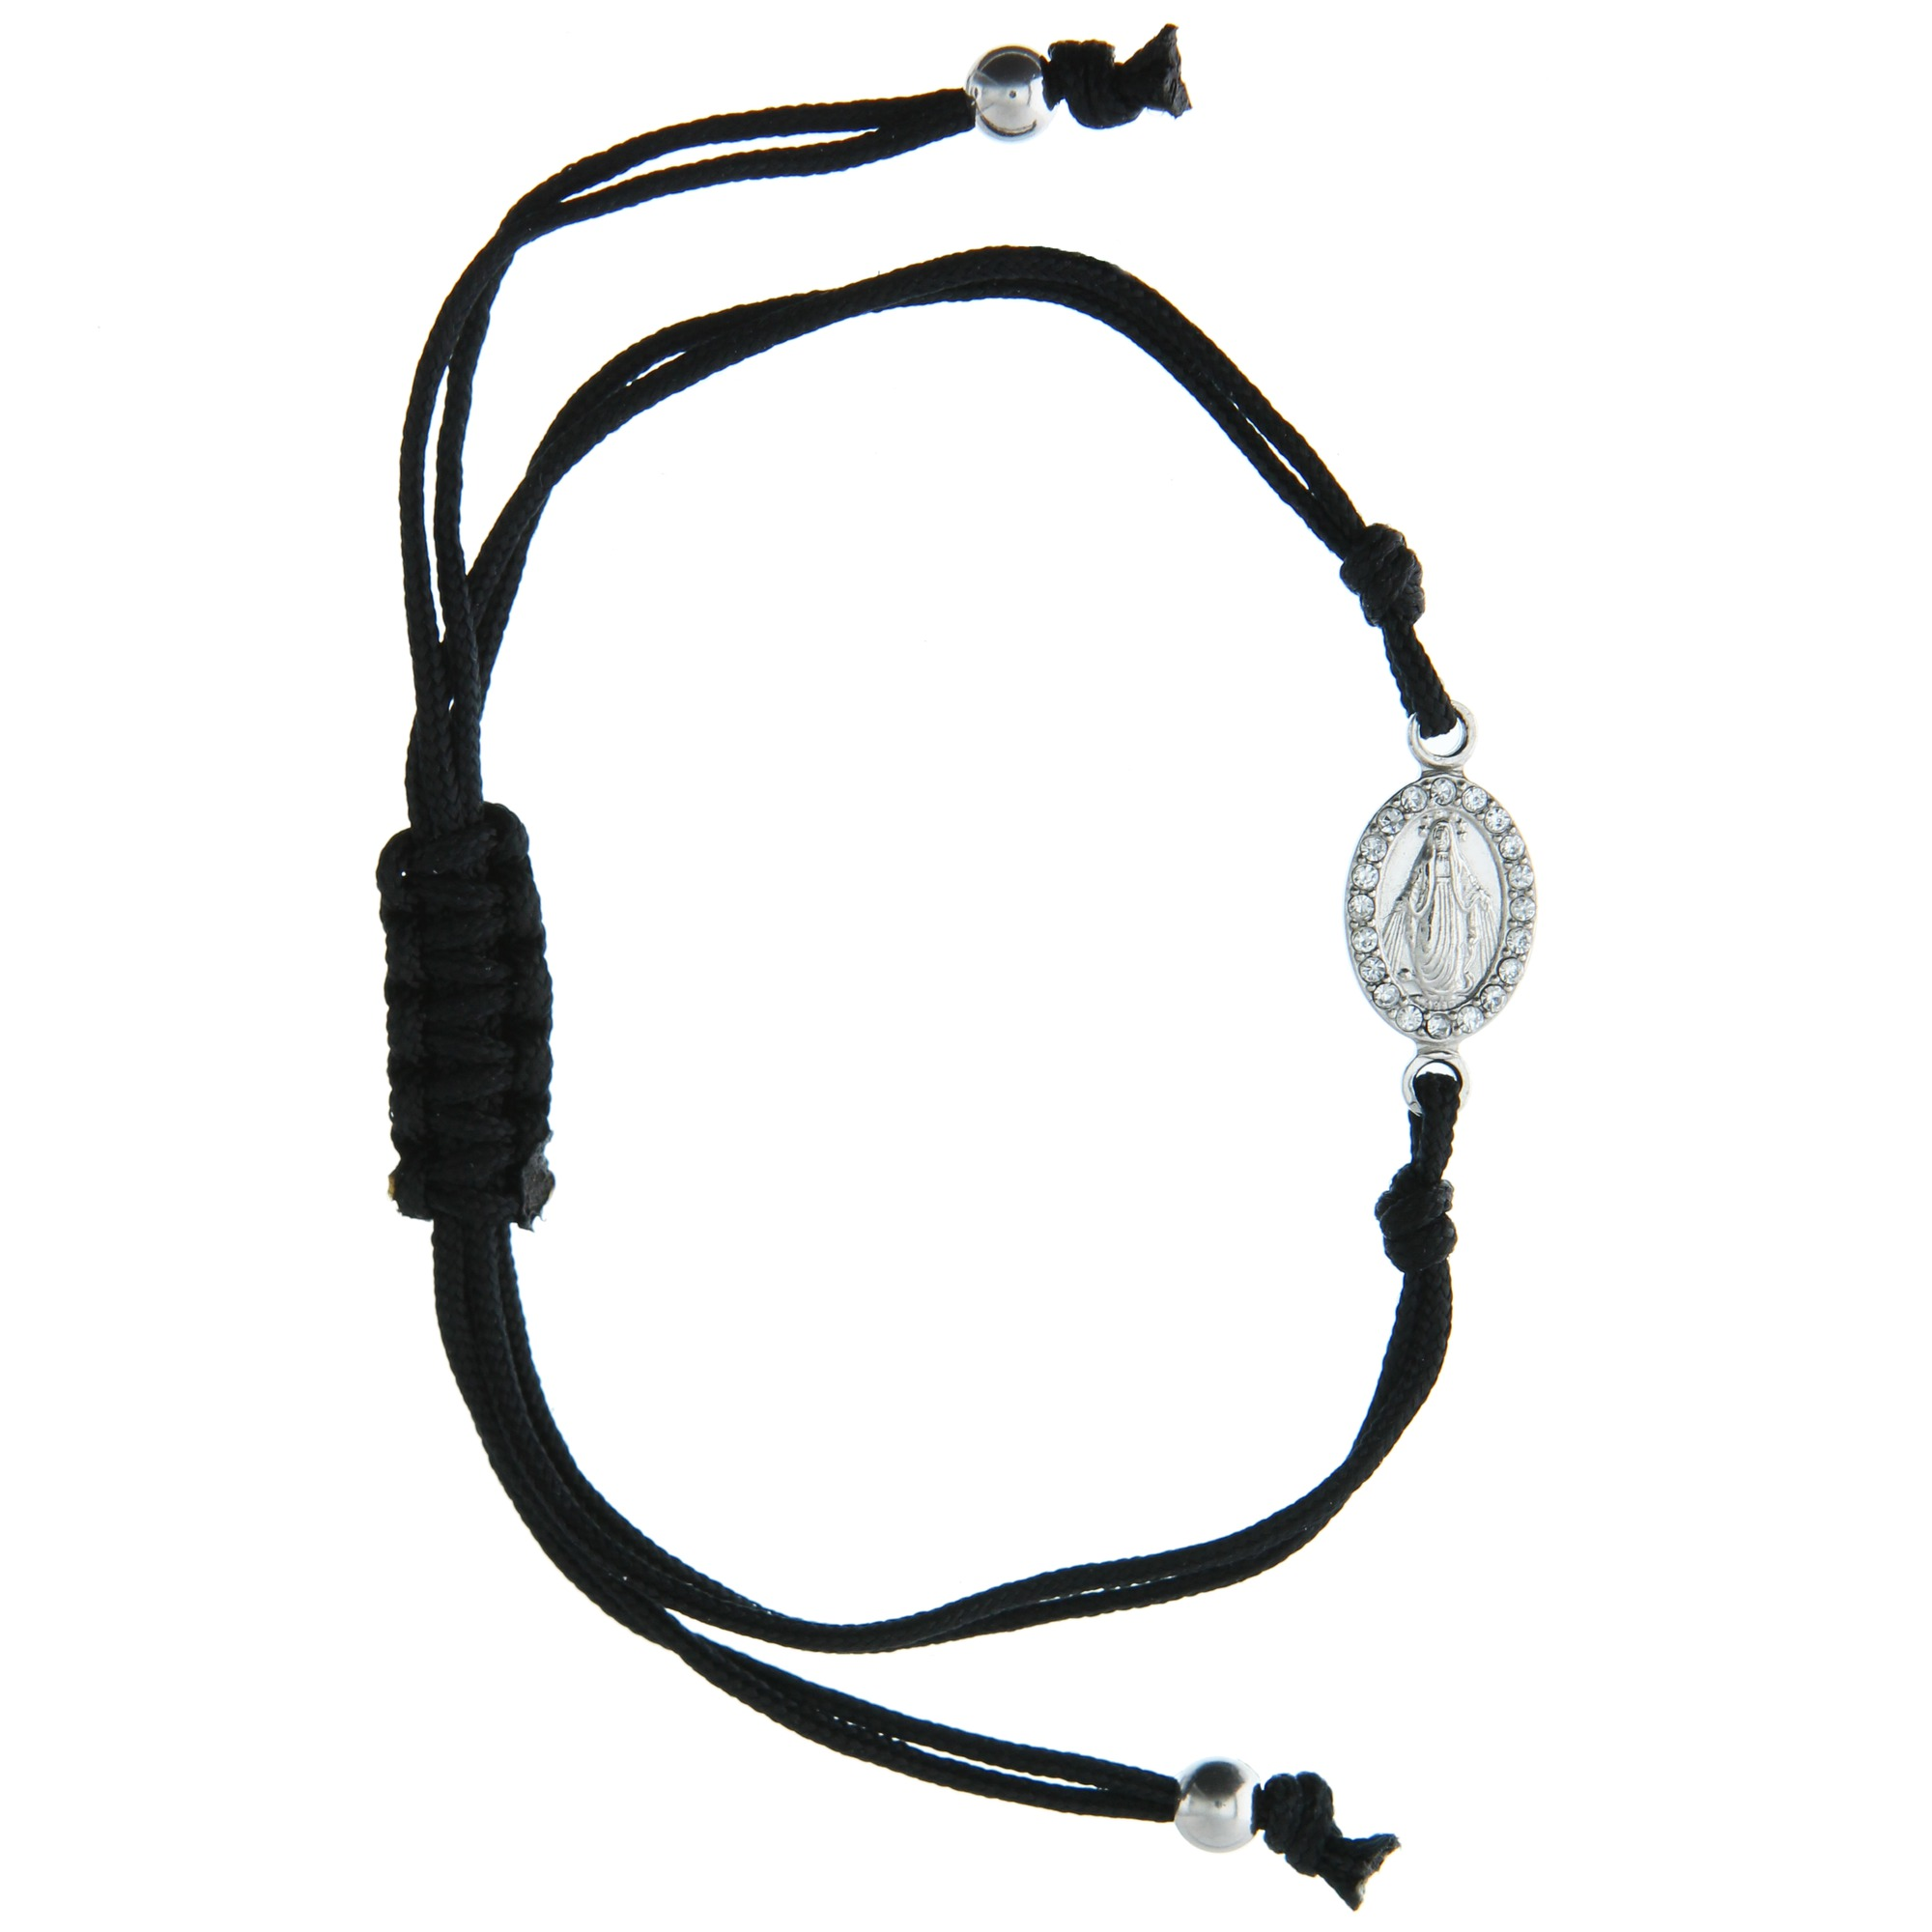 kindred wear corded watch bracelet cord youtube how to